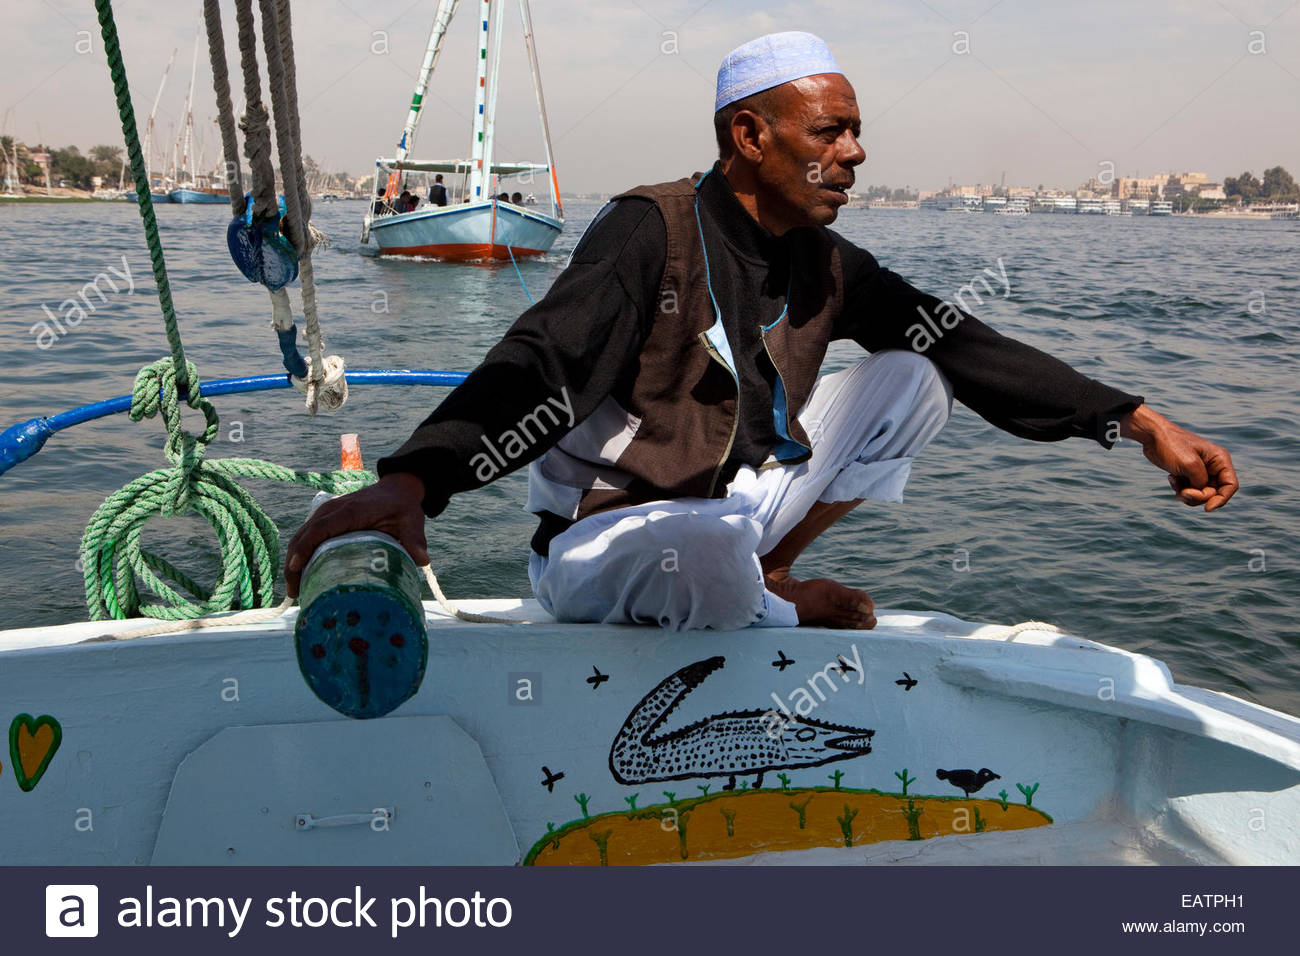 Traditional sailing vessels, feluccas, in the Nile River, Luxor. - Stock Image